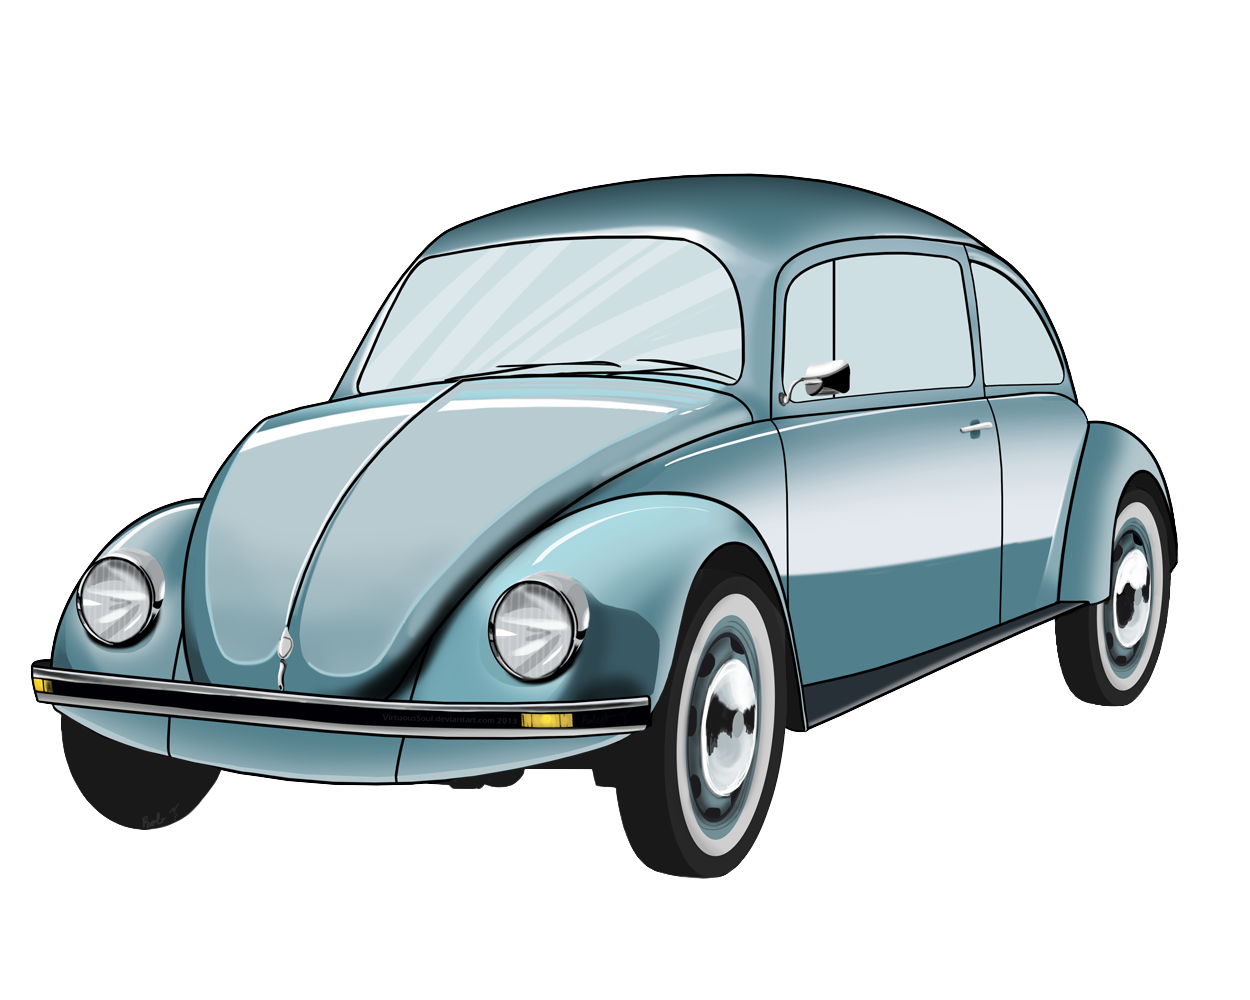 1250x1000 Free To Use Amp Public Domain Cars Clip Art